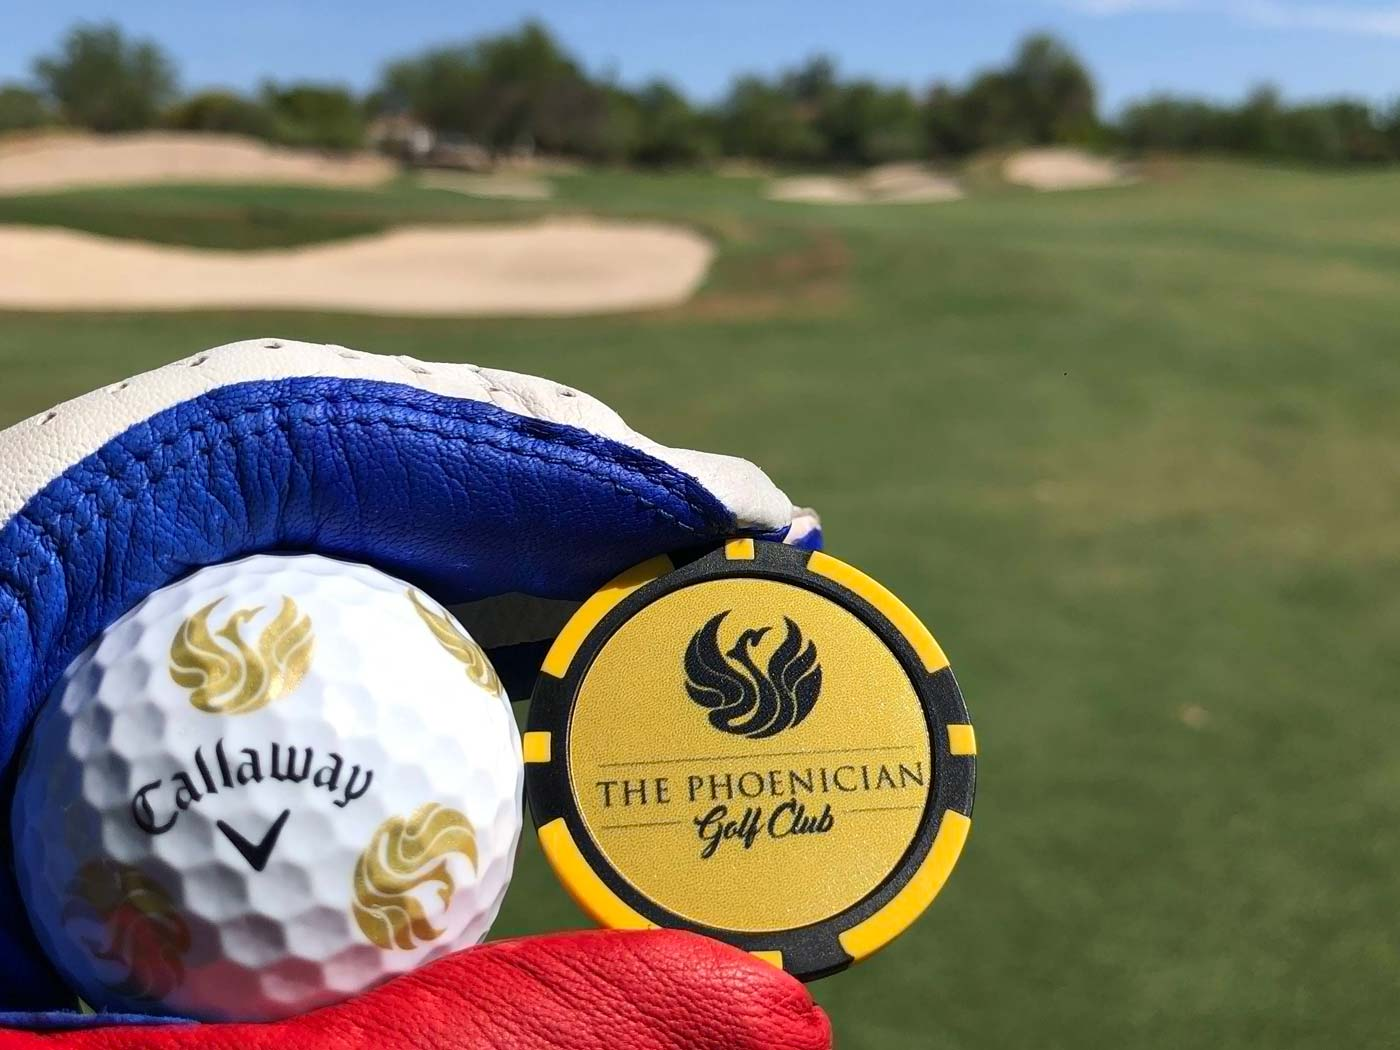 golfer holds up golf ball on The Phoenician golf course